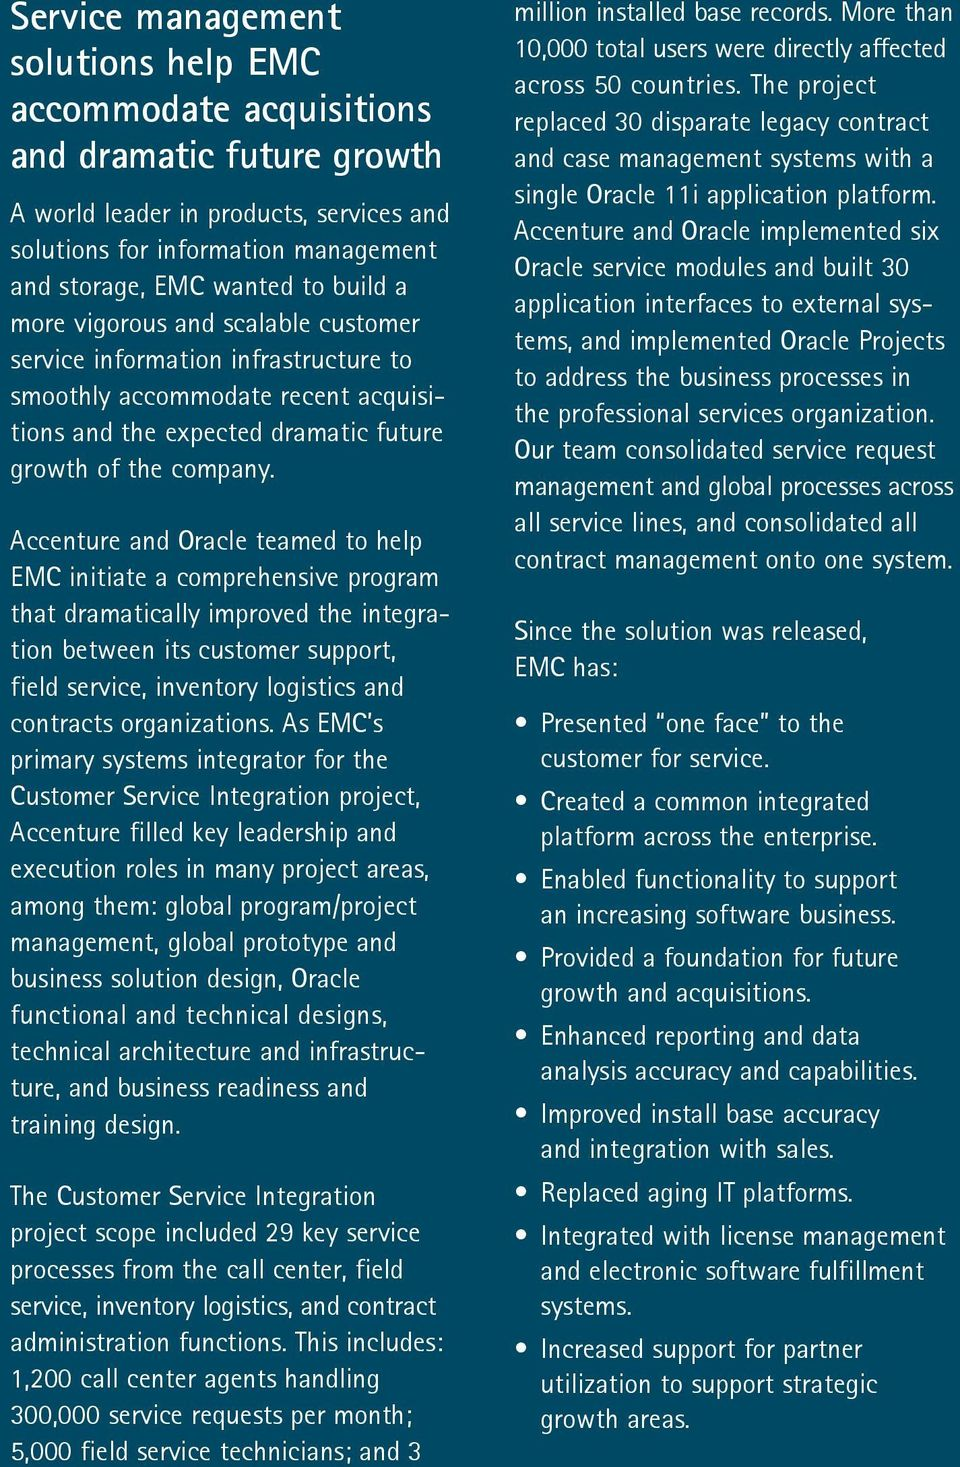 Accenture and Oracle teamed to help EMC initiate a comprehensive program that dramatically improved the integration between its customer support, field service, inventory logistics and contracts